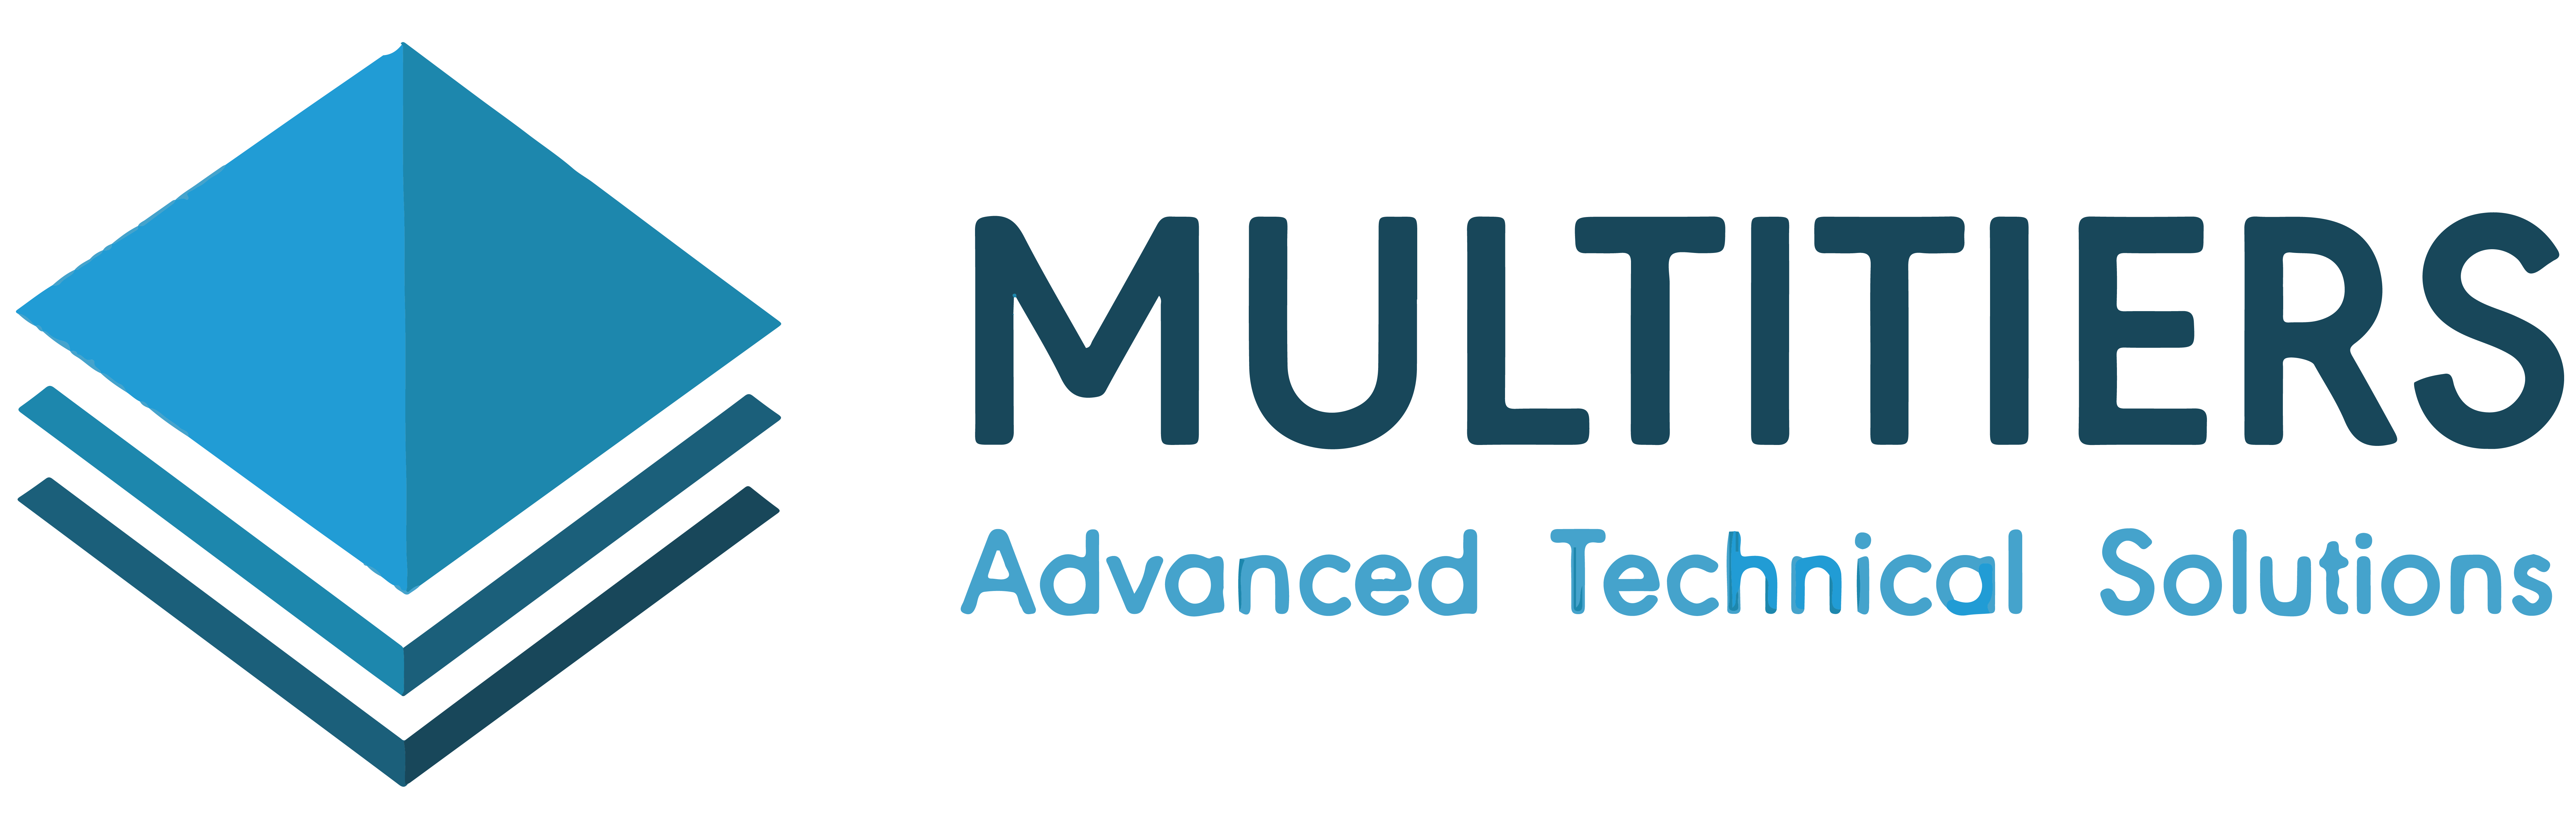 Multitiers logo